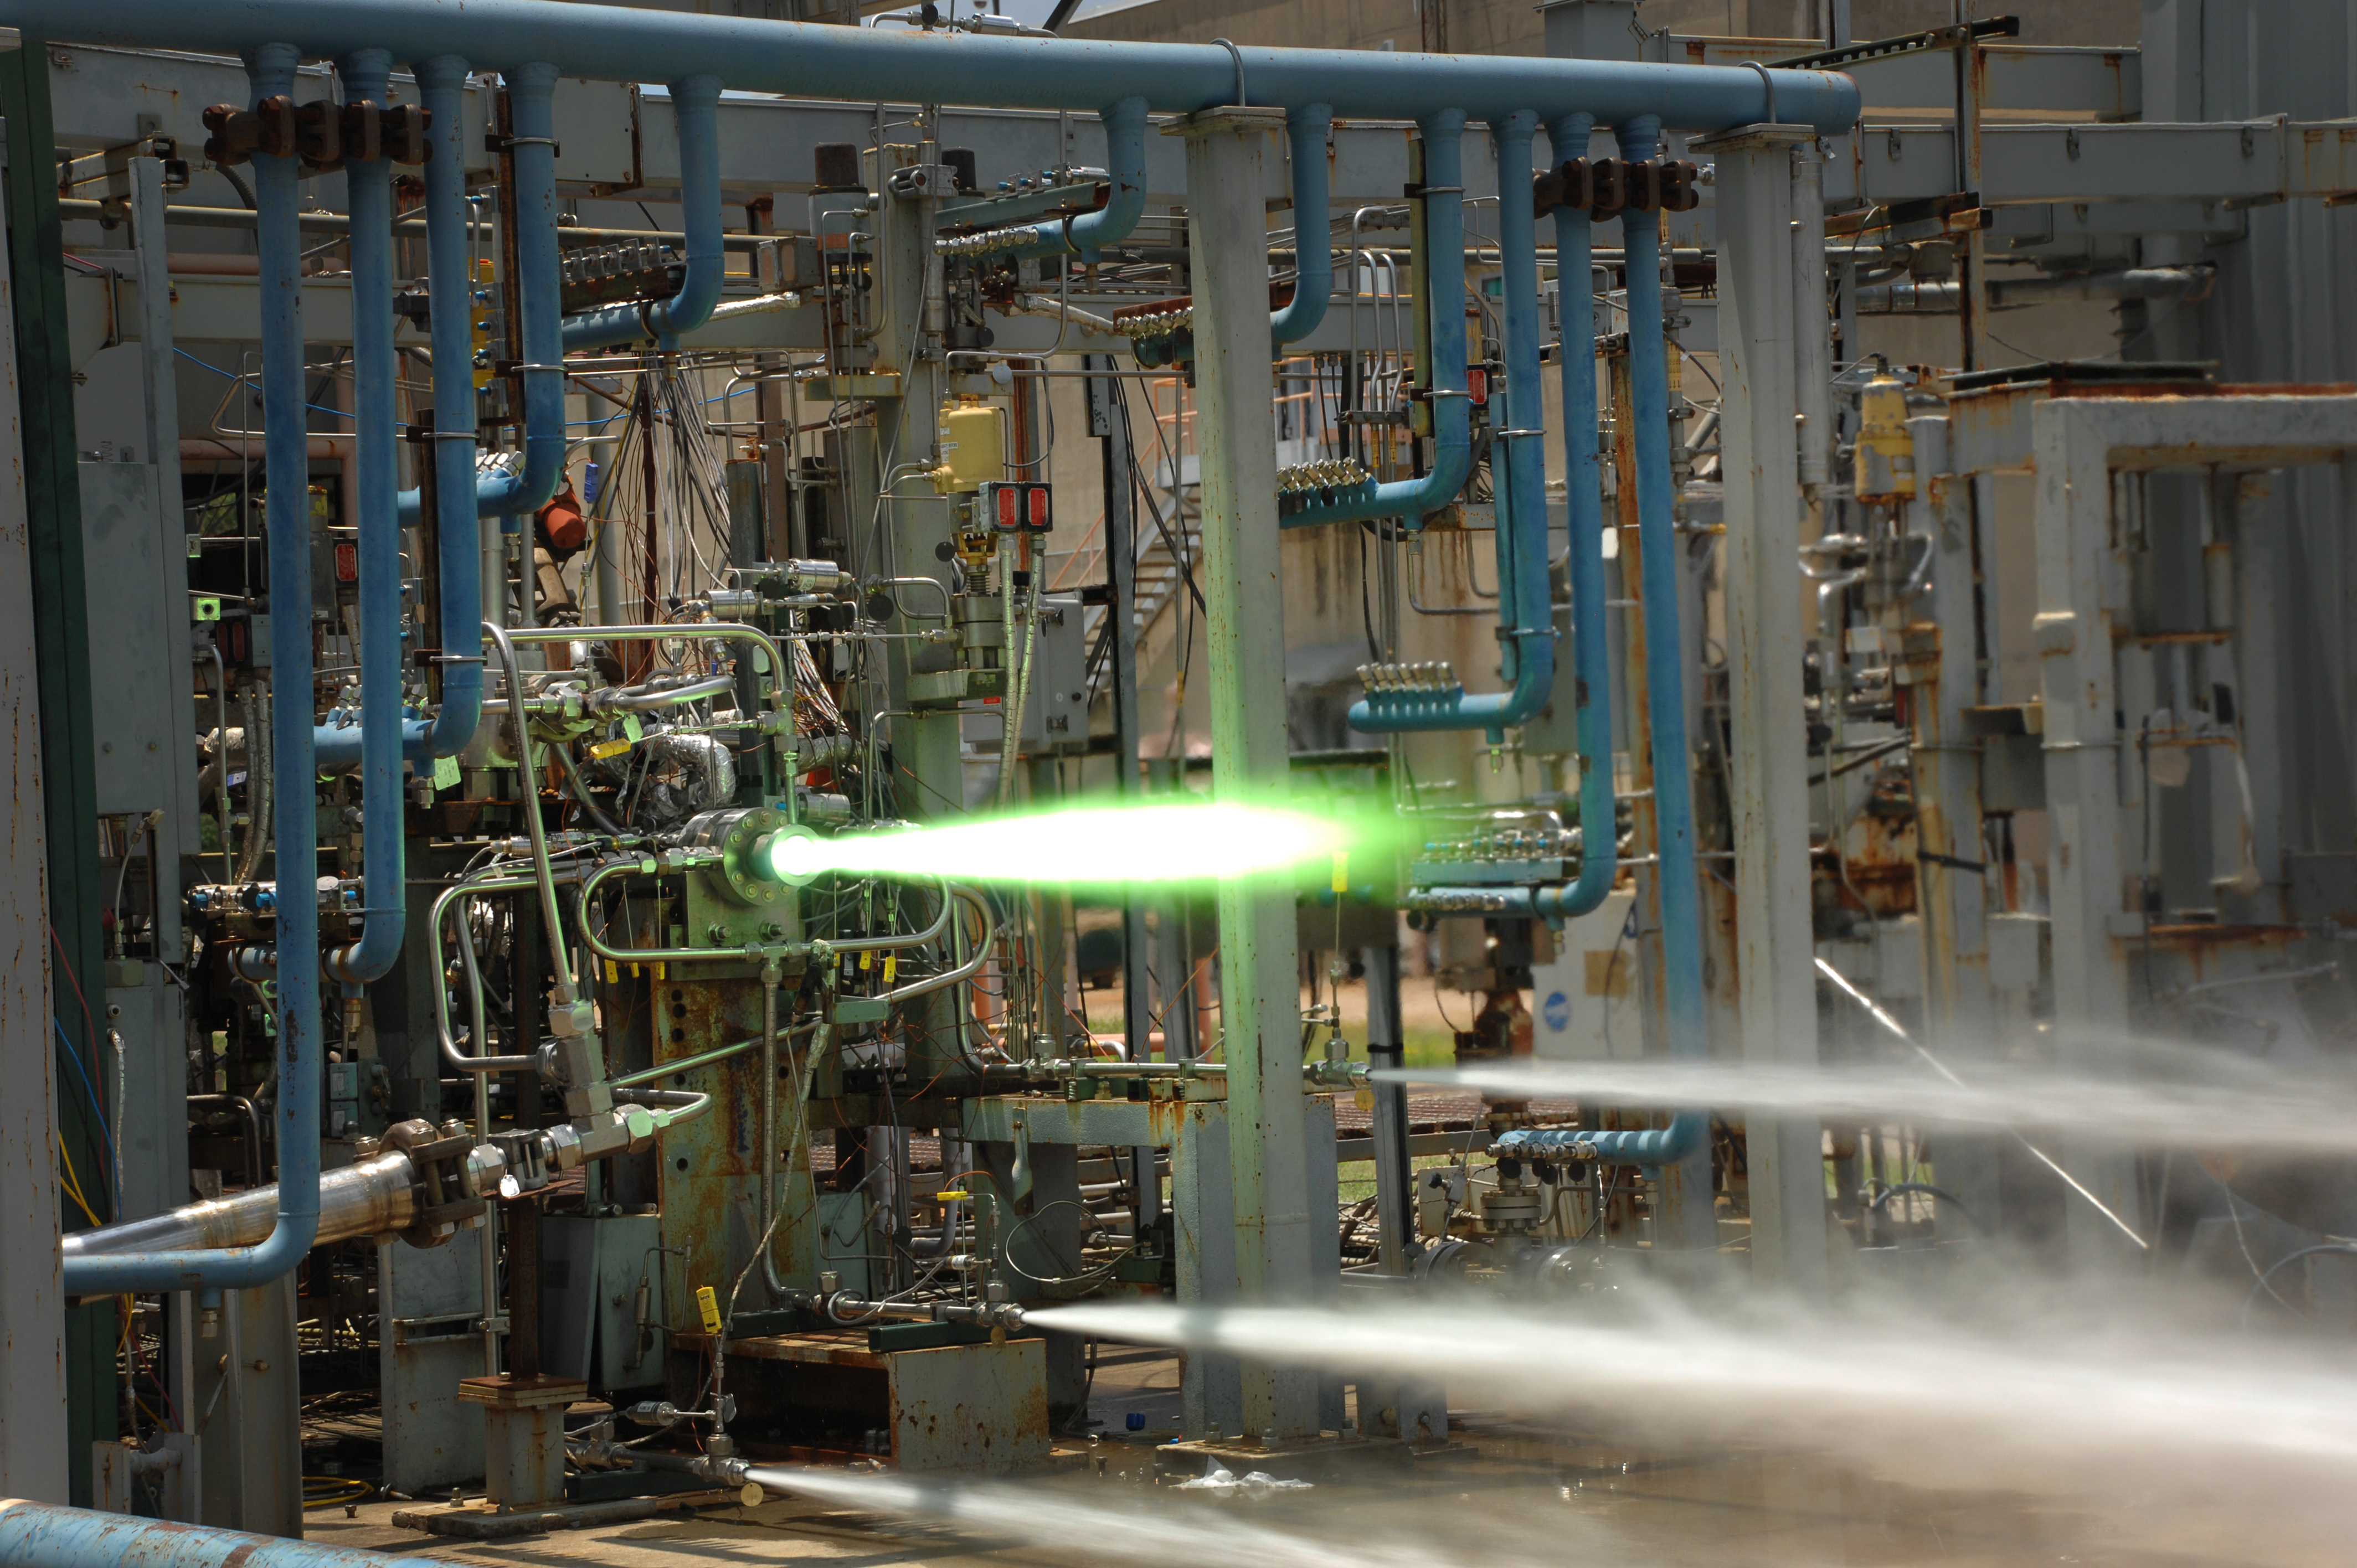 3 D Printed Rocket Parts Rival Traditionally Manufactured